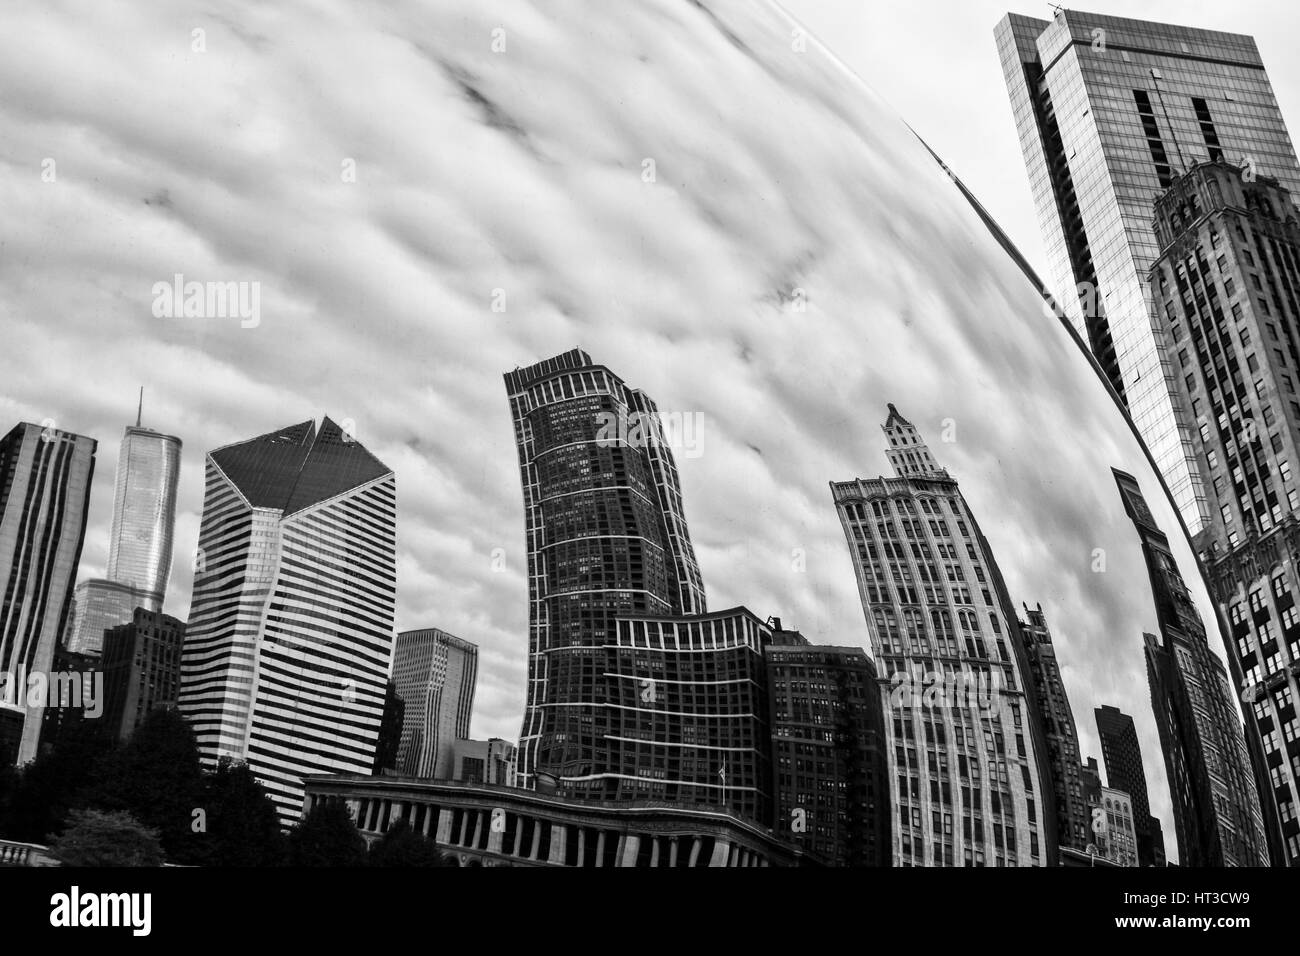 Chicago - Circa October 2009: Cloud Gate, also known as the Bean, in Millennium Park on a Cloudy Day I - Stock Image